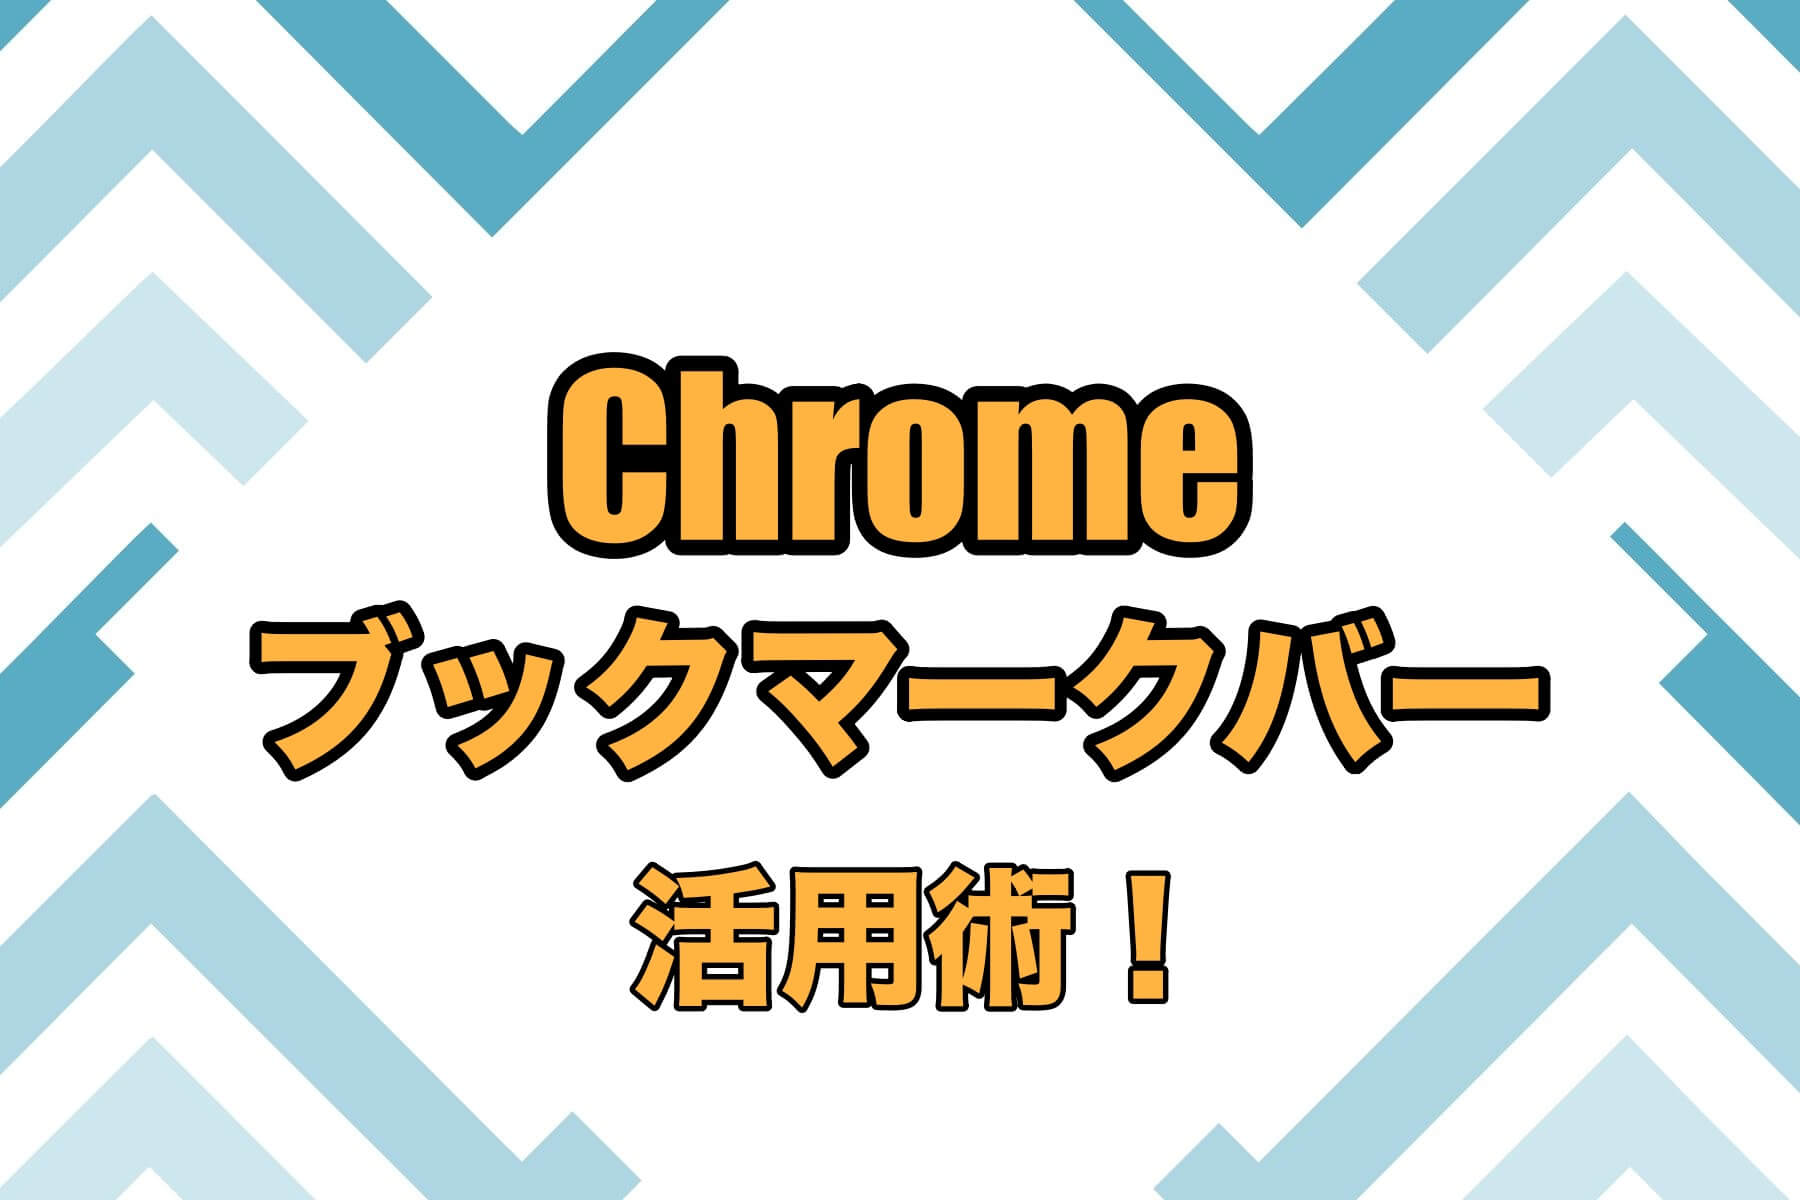 chrome-bookmarkbar-eyecatch